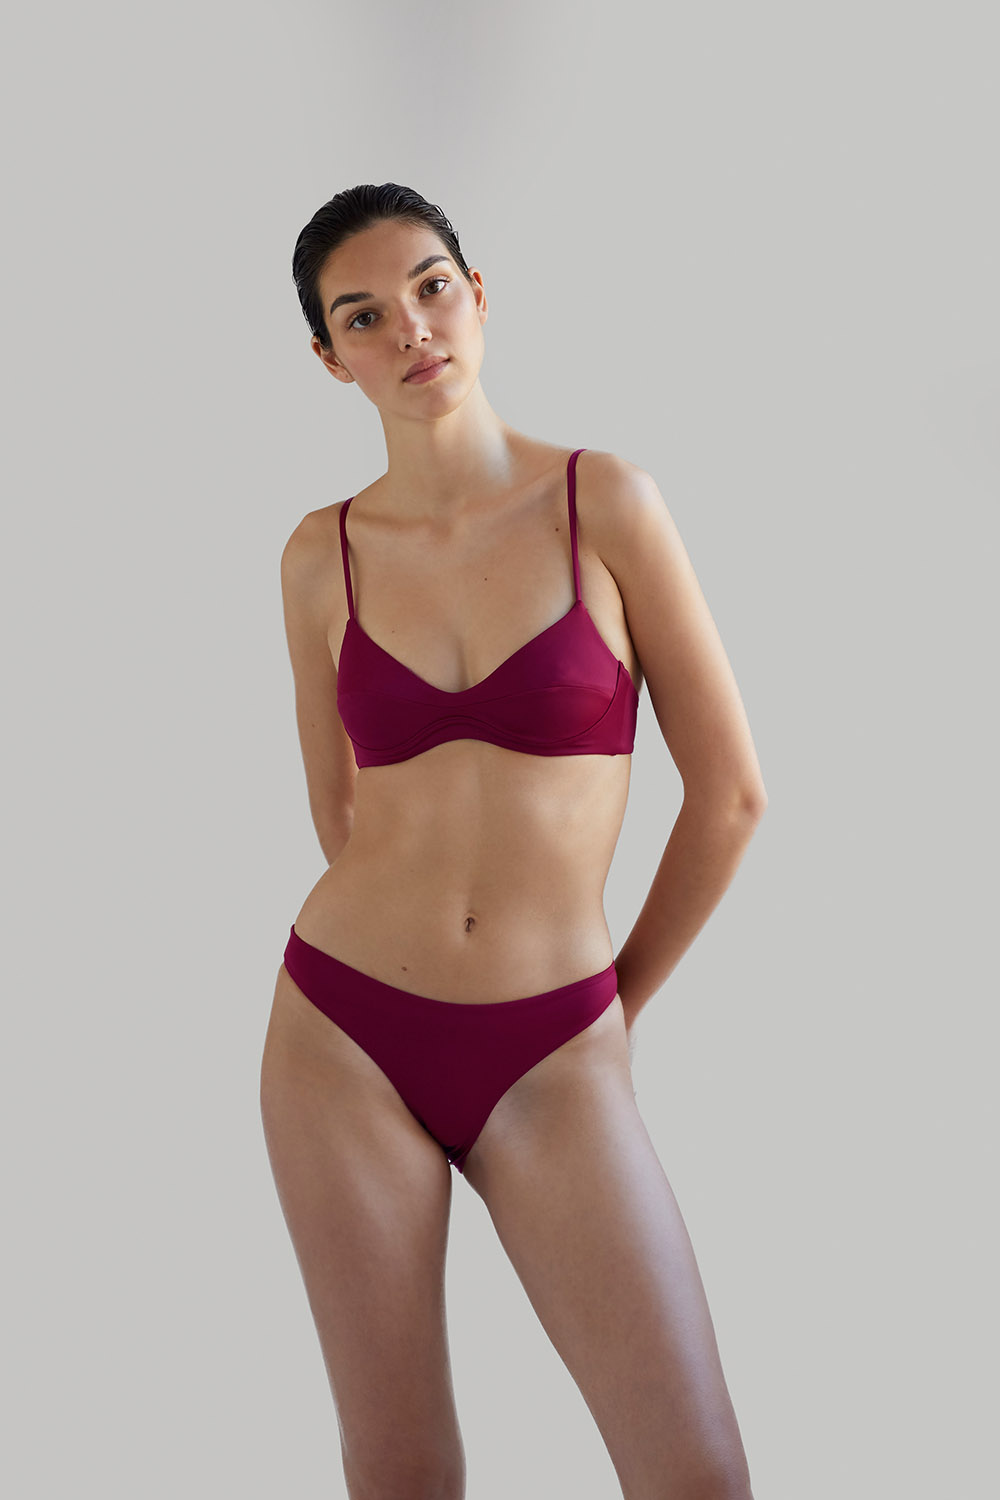 NOW_THEN Sustainable swimwear ALONA pitaya bañador reciclado ecológico